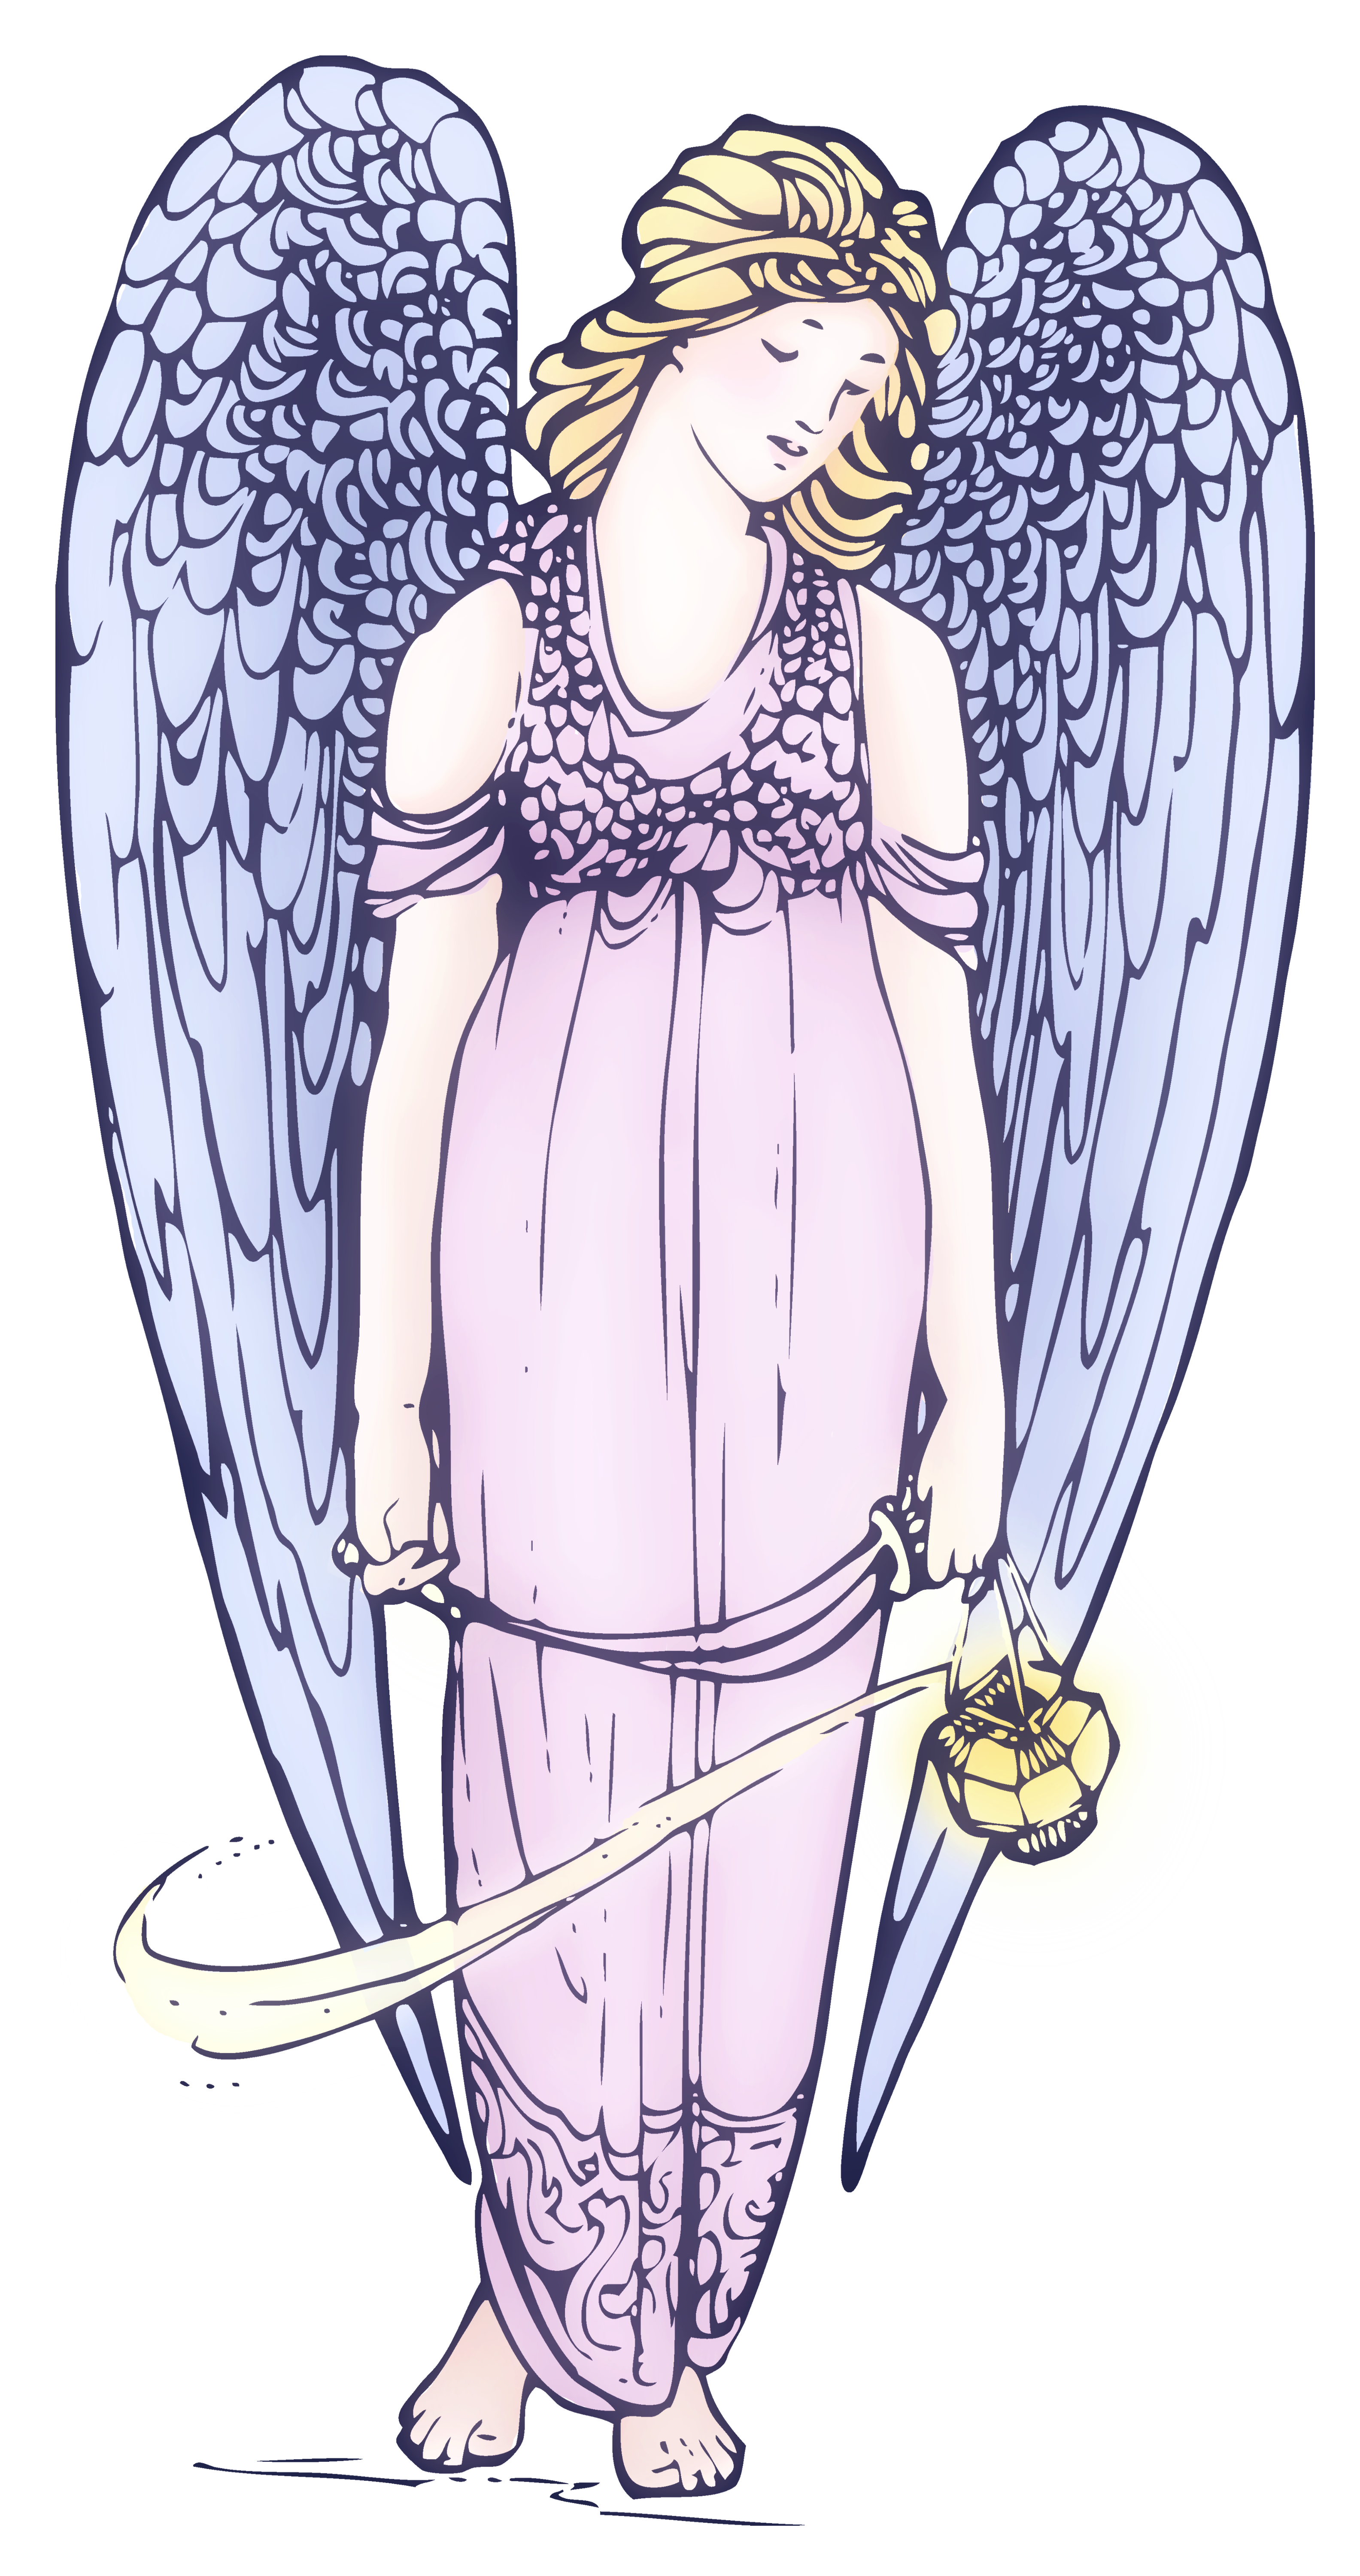 Vintage clipart public domain clipart library Lovely Angel Public Domain Clipart - Free Clip Art clipart library